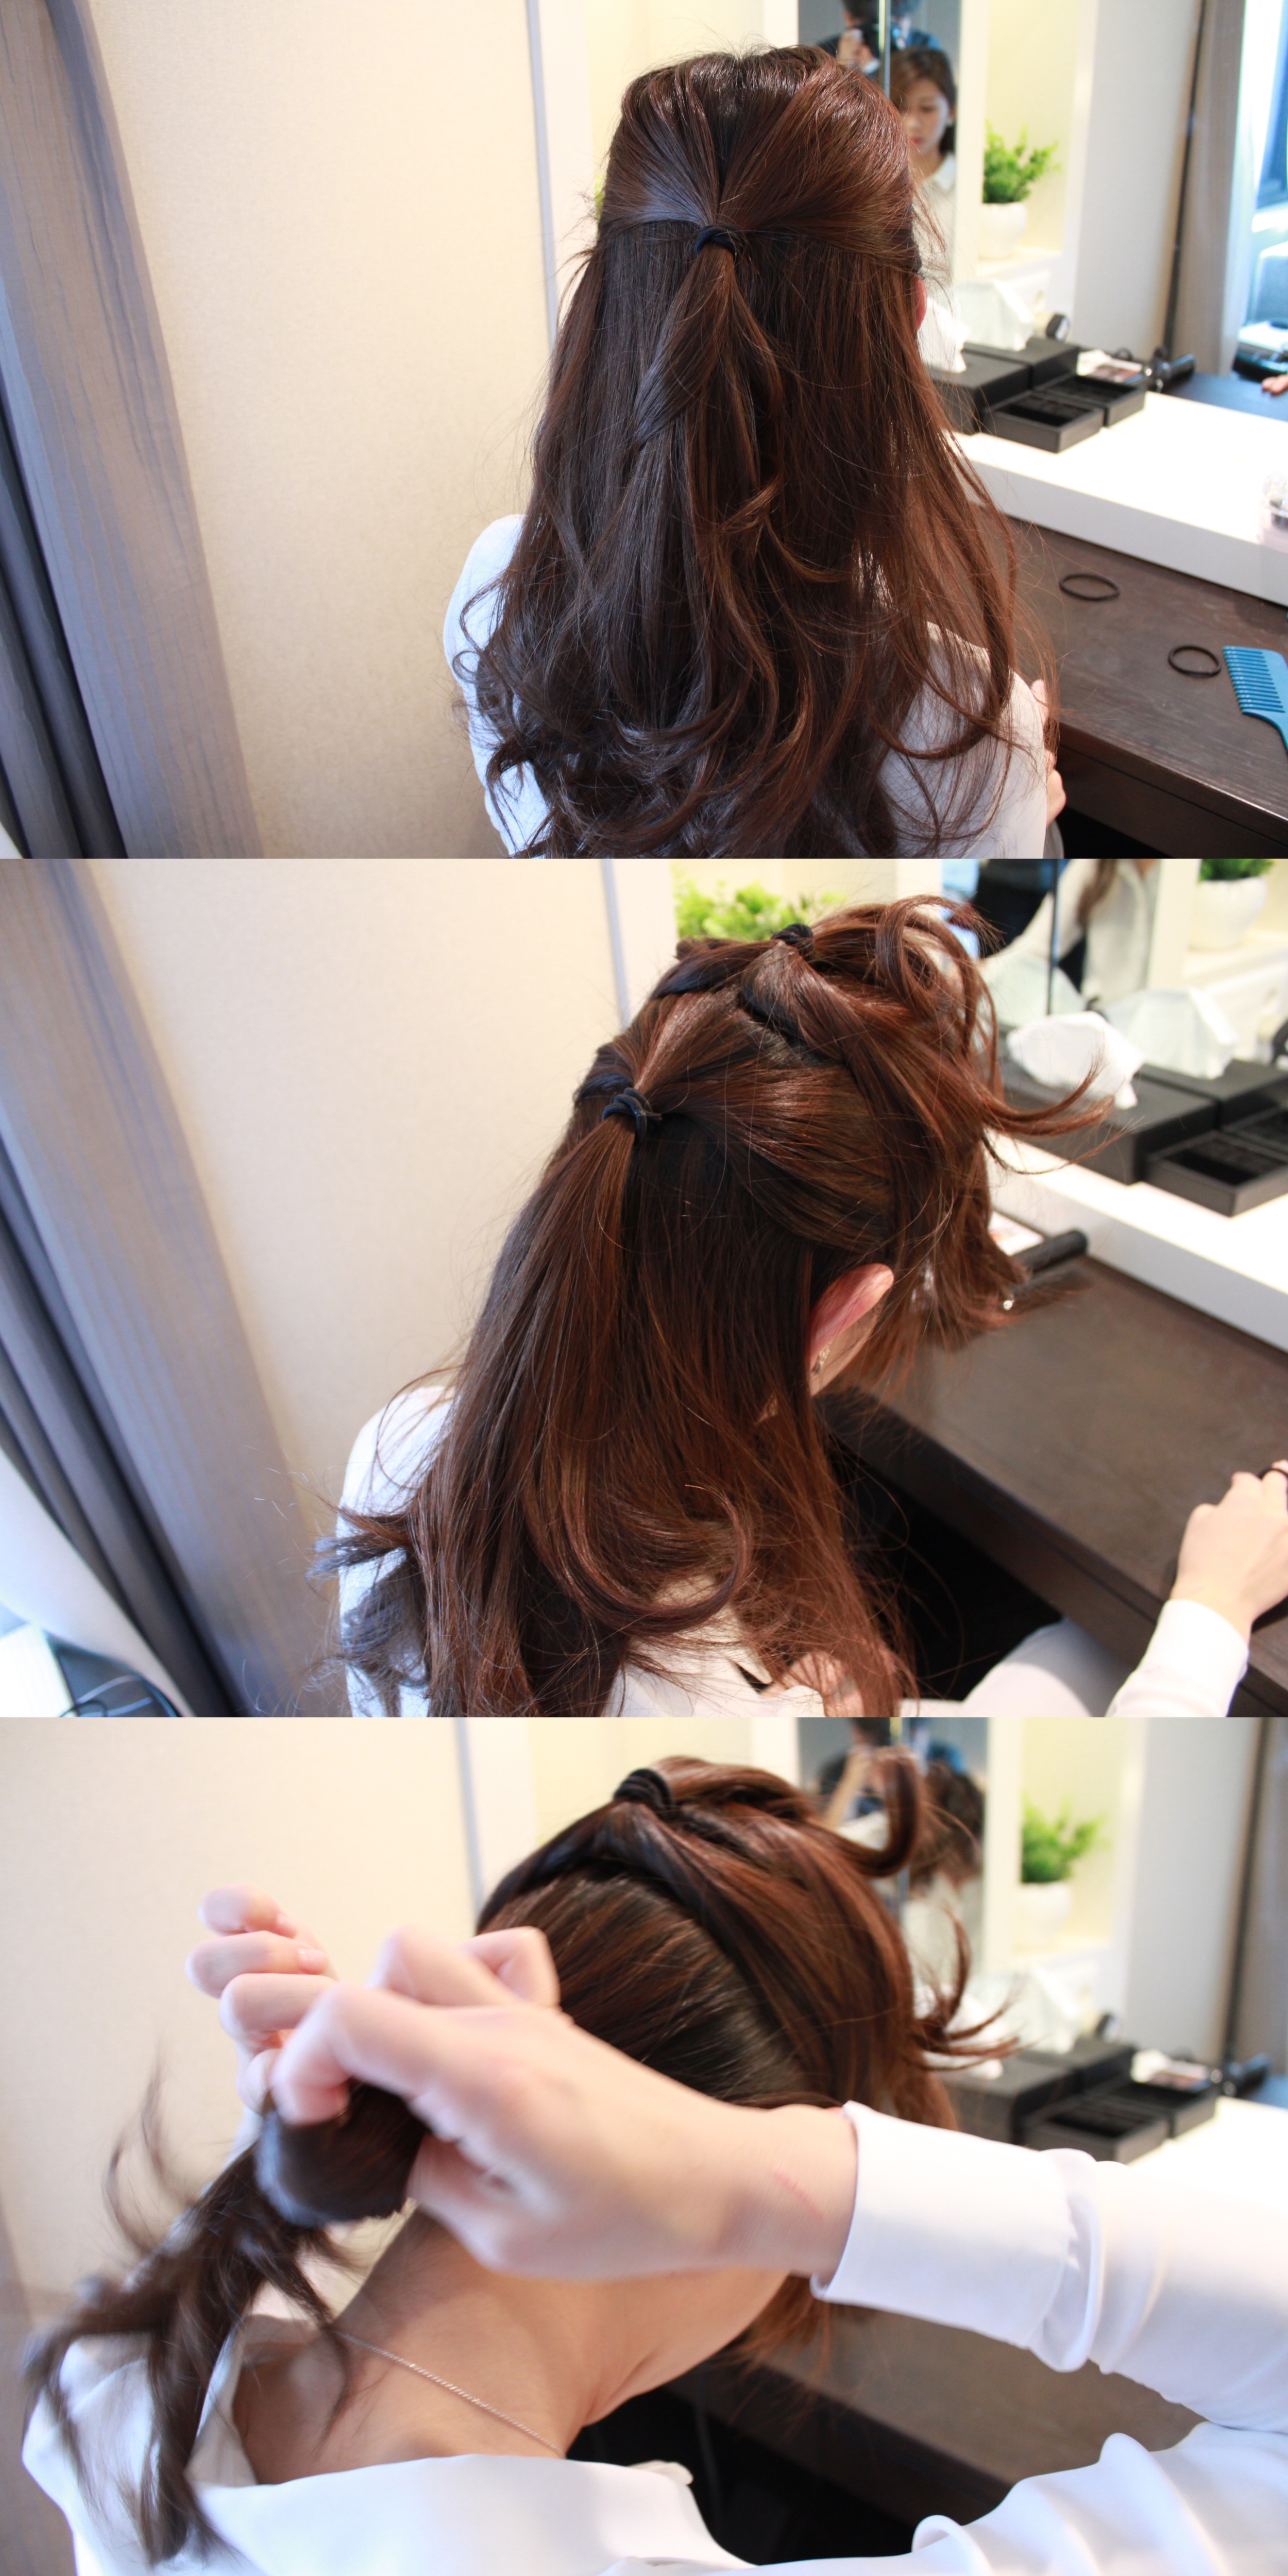 Tie 3 ponytails vertically lined.